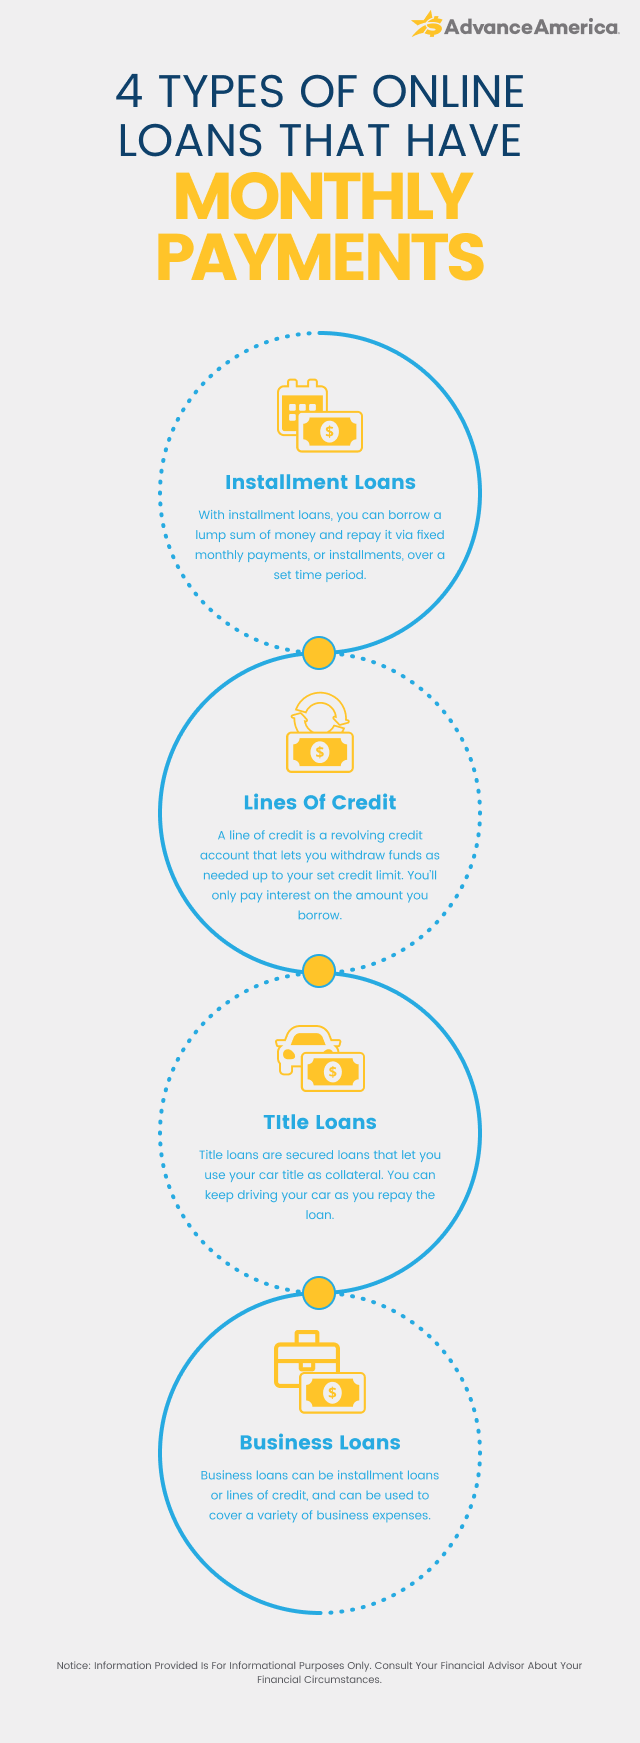 Types of online loans that have monthly payments